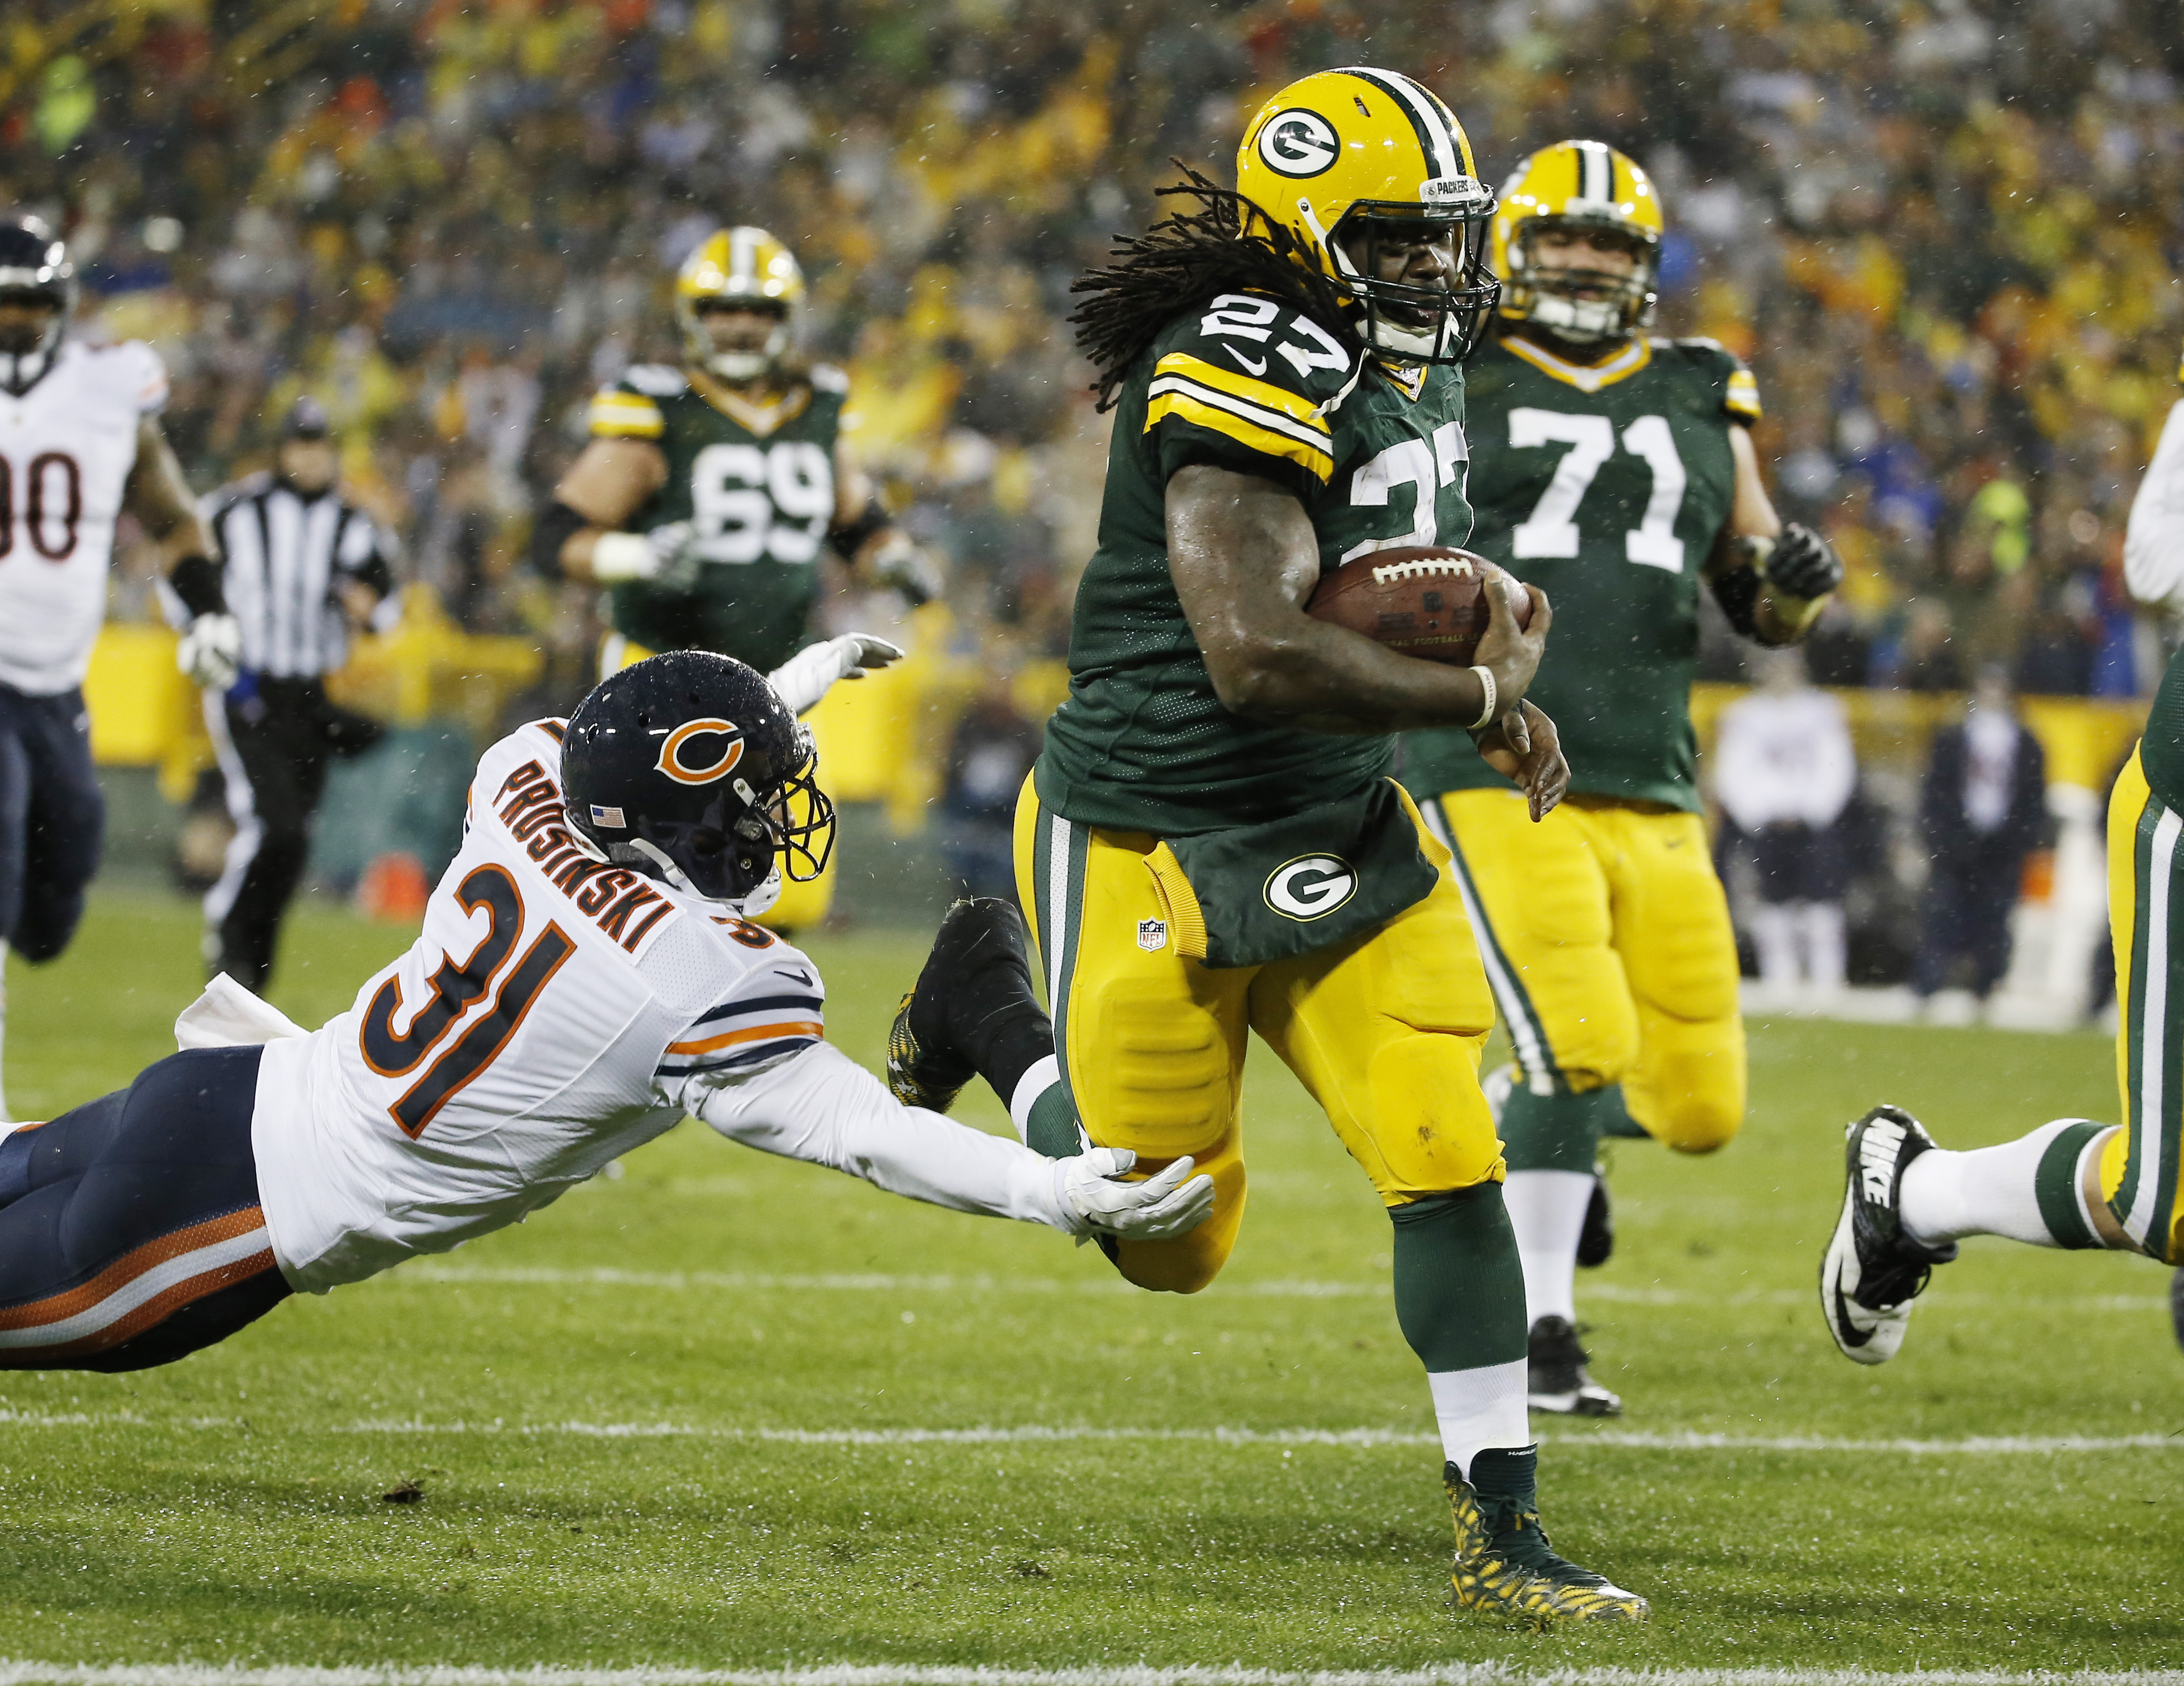 FILE - In this Nov. 26, 2015, file photo, Green Bay Packers' Eddie Lacy runs for a touchdown during the first half of an NFL football game against the Chicago Bears, in Green Bay, Wis. Lacy got a fresh start and ran all over the Dallas Cowboys. Now the go